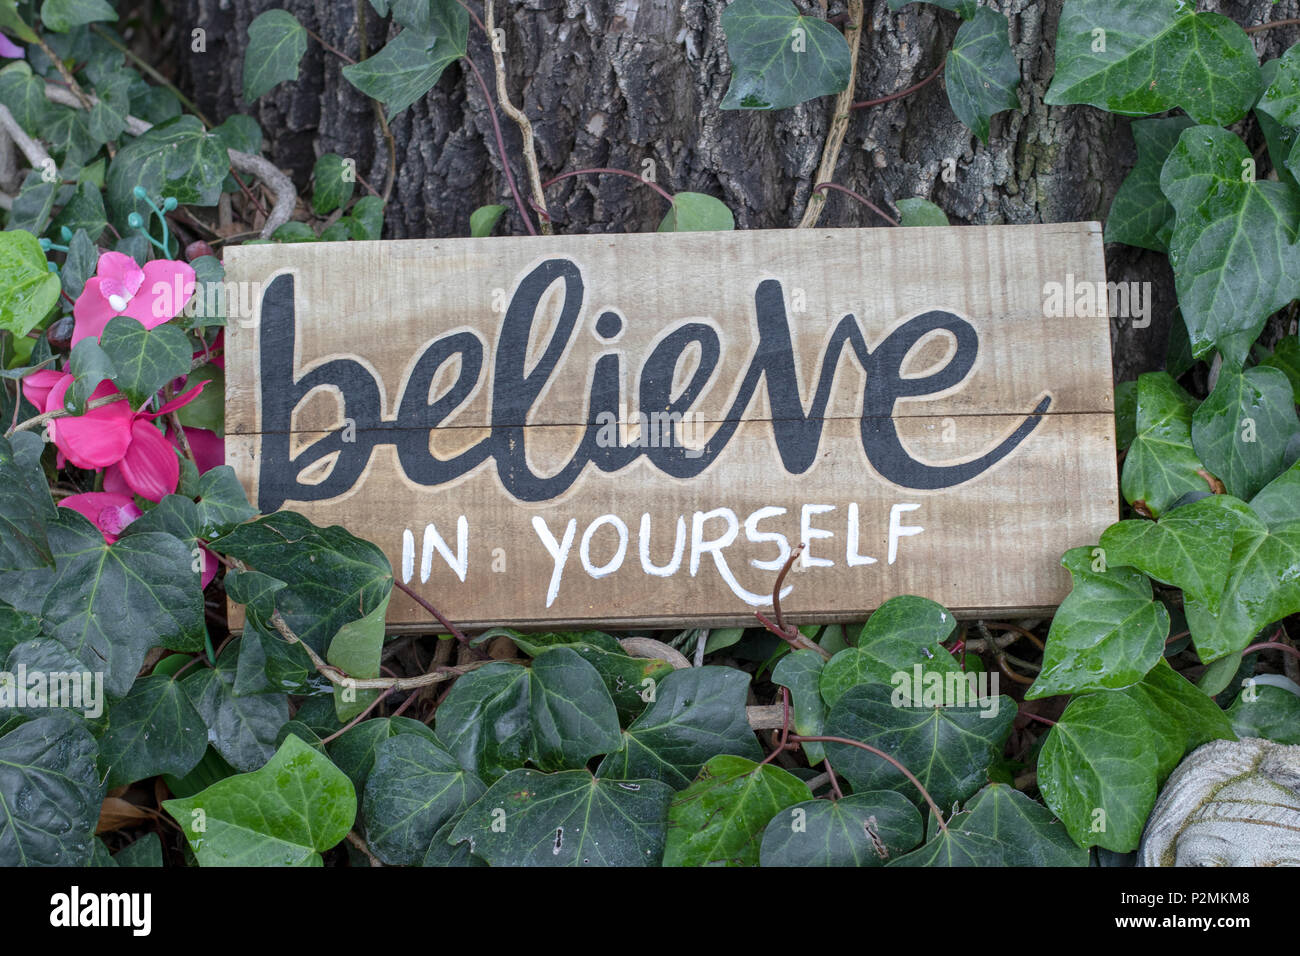 Image result for whimsical images for believe